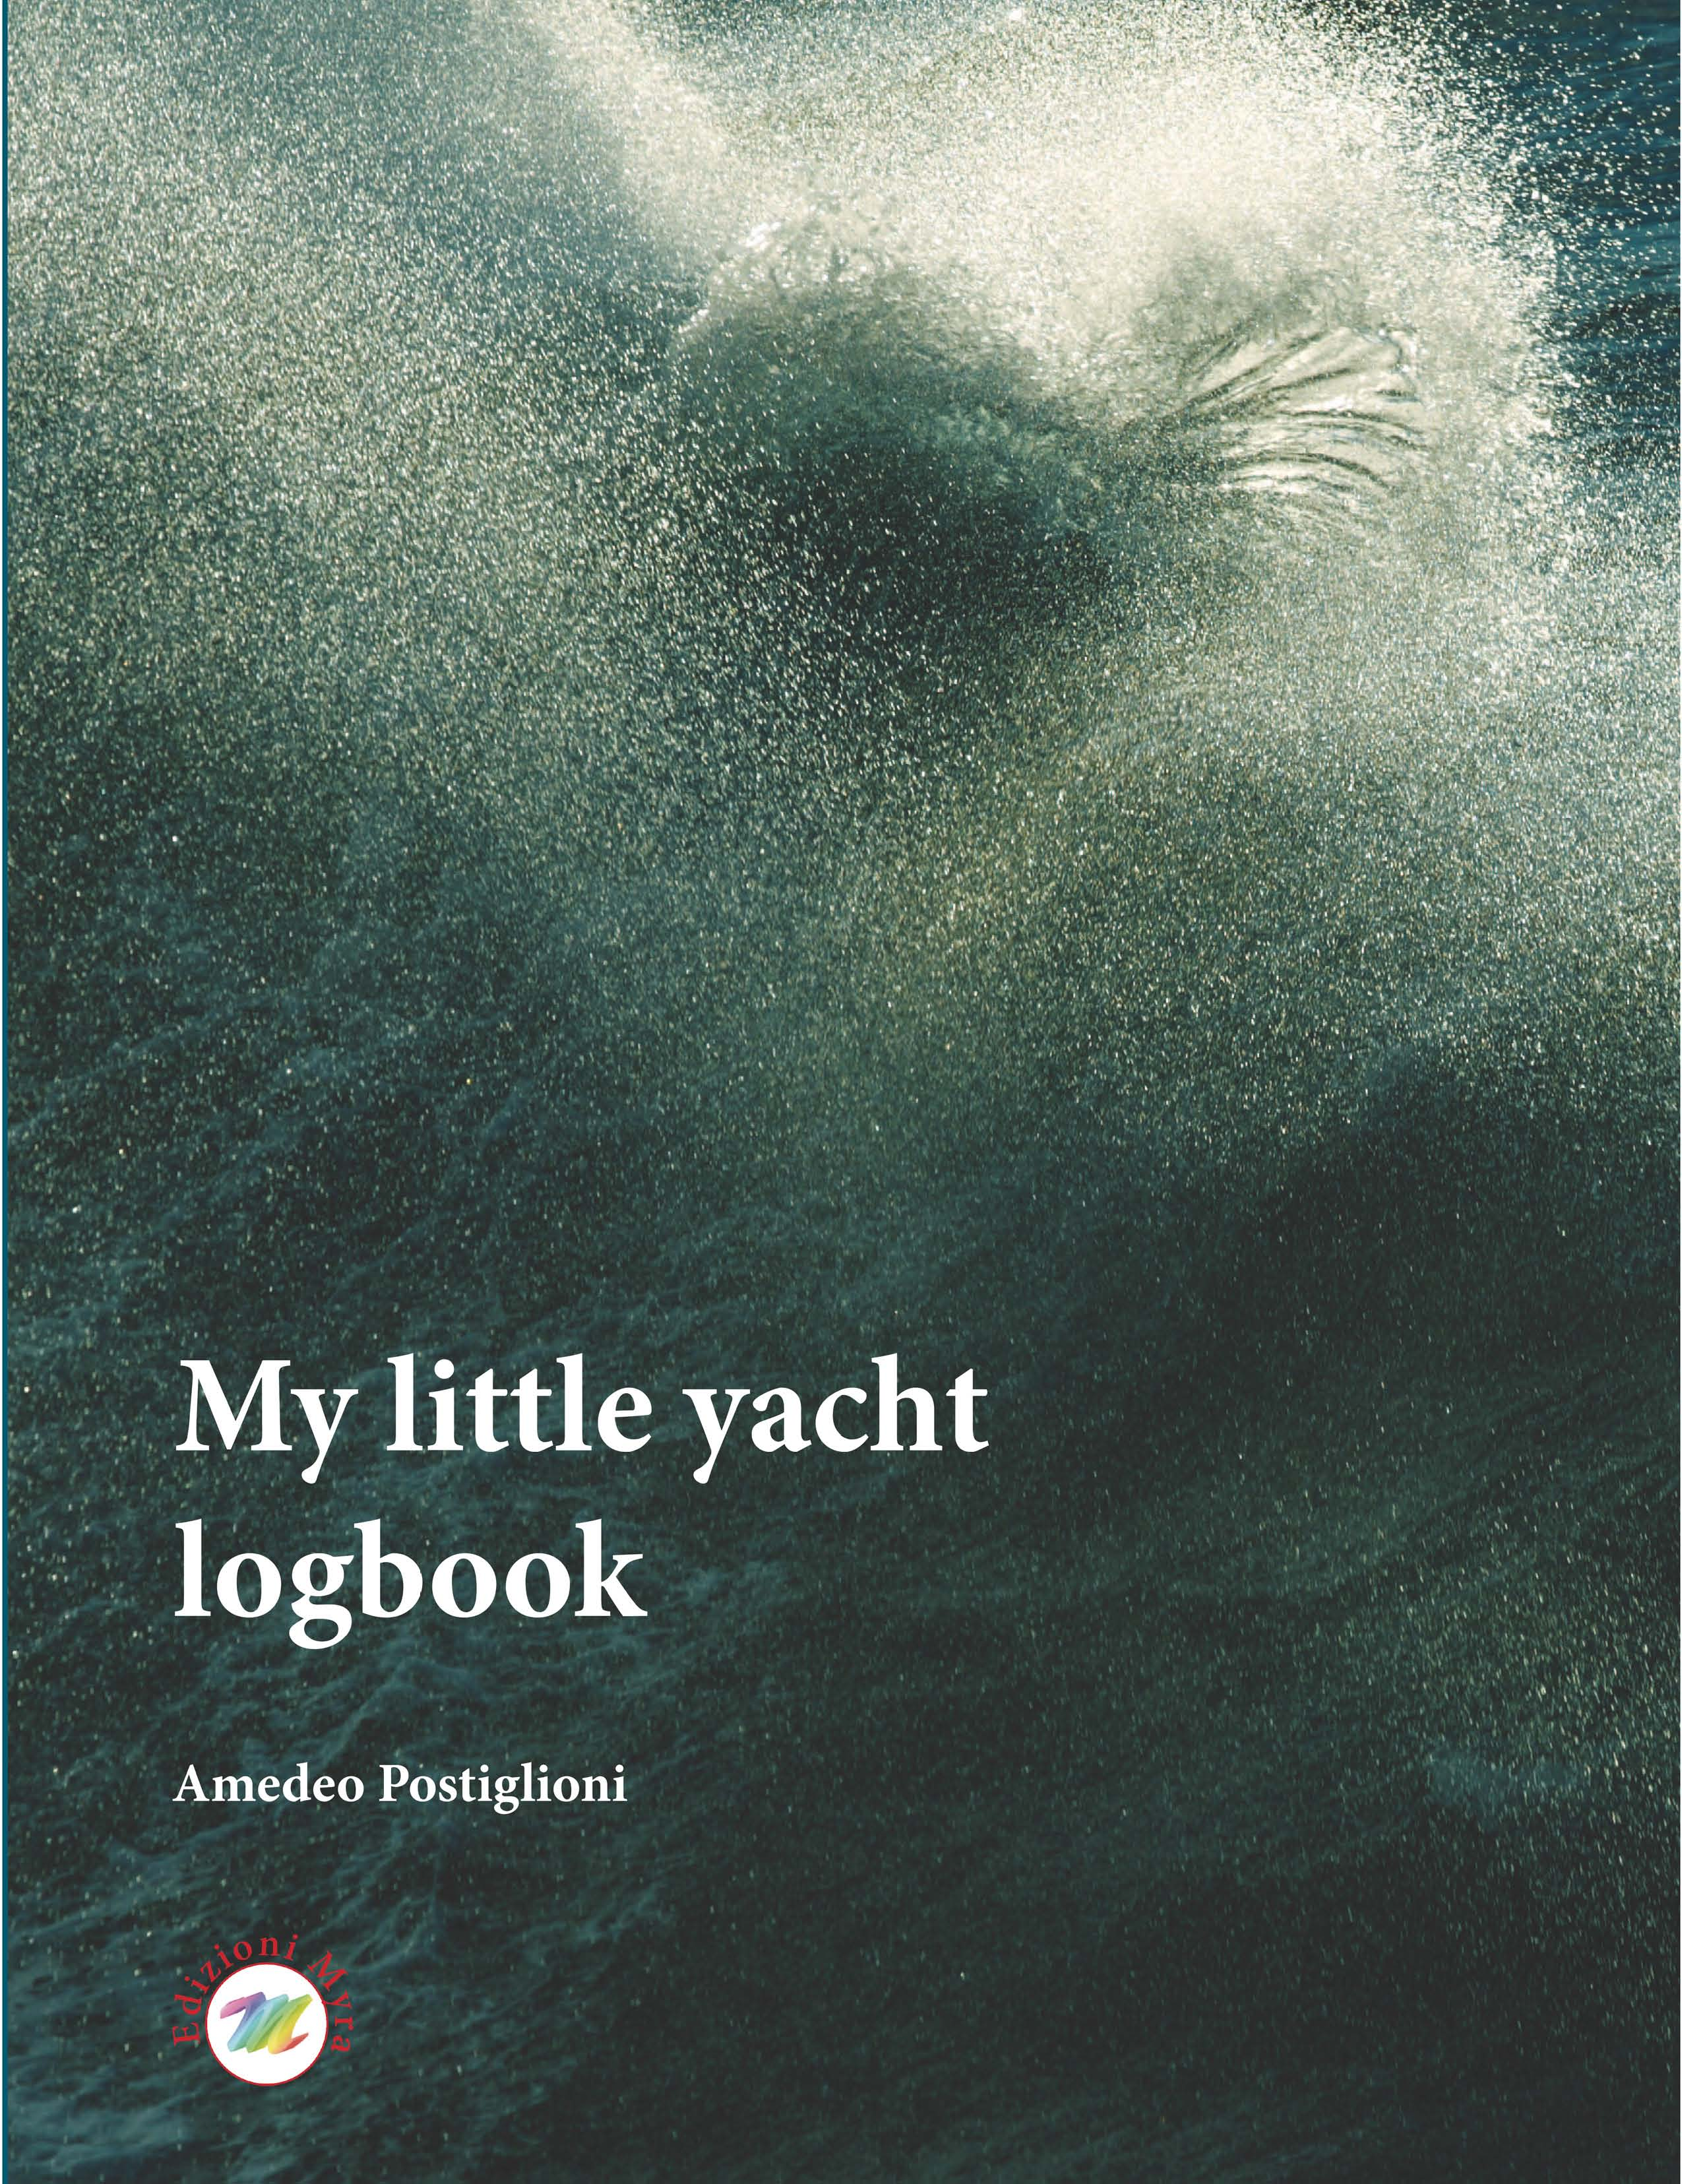 My little yacht logbook